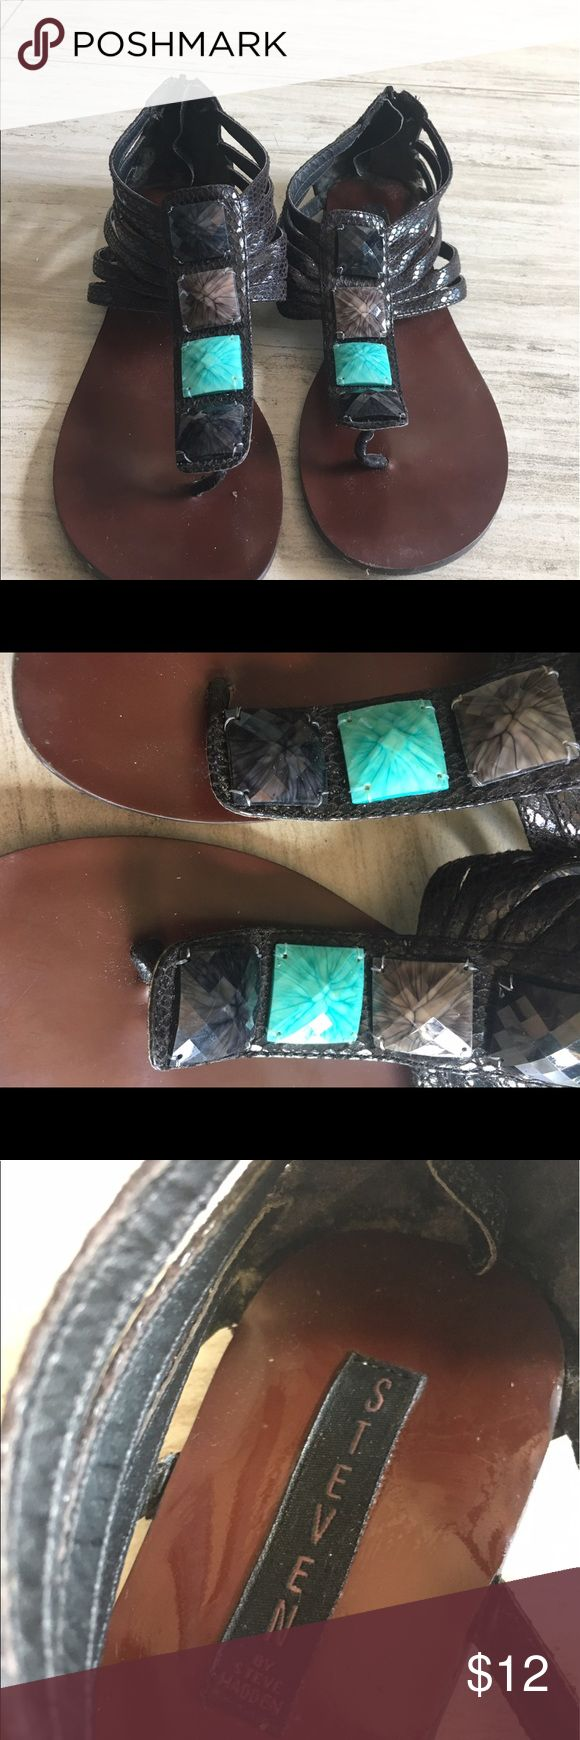 Black and teal sandals Very cute black and teal sandals by Steve Madden Steve Madden Shoes Sandals